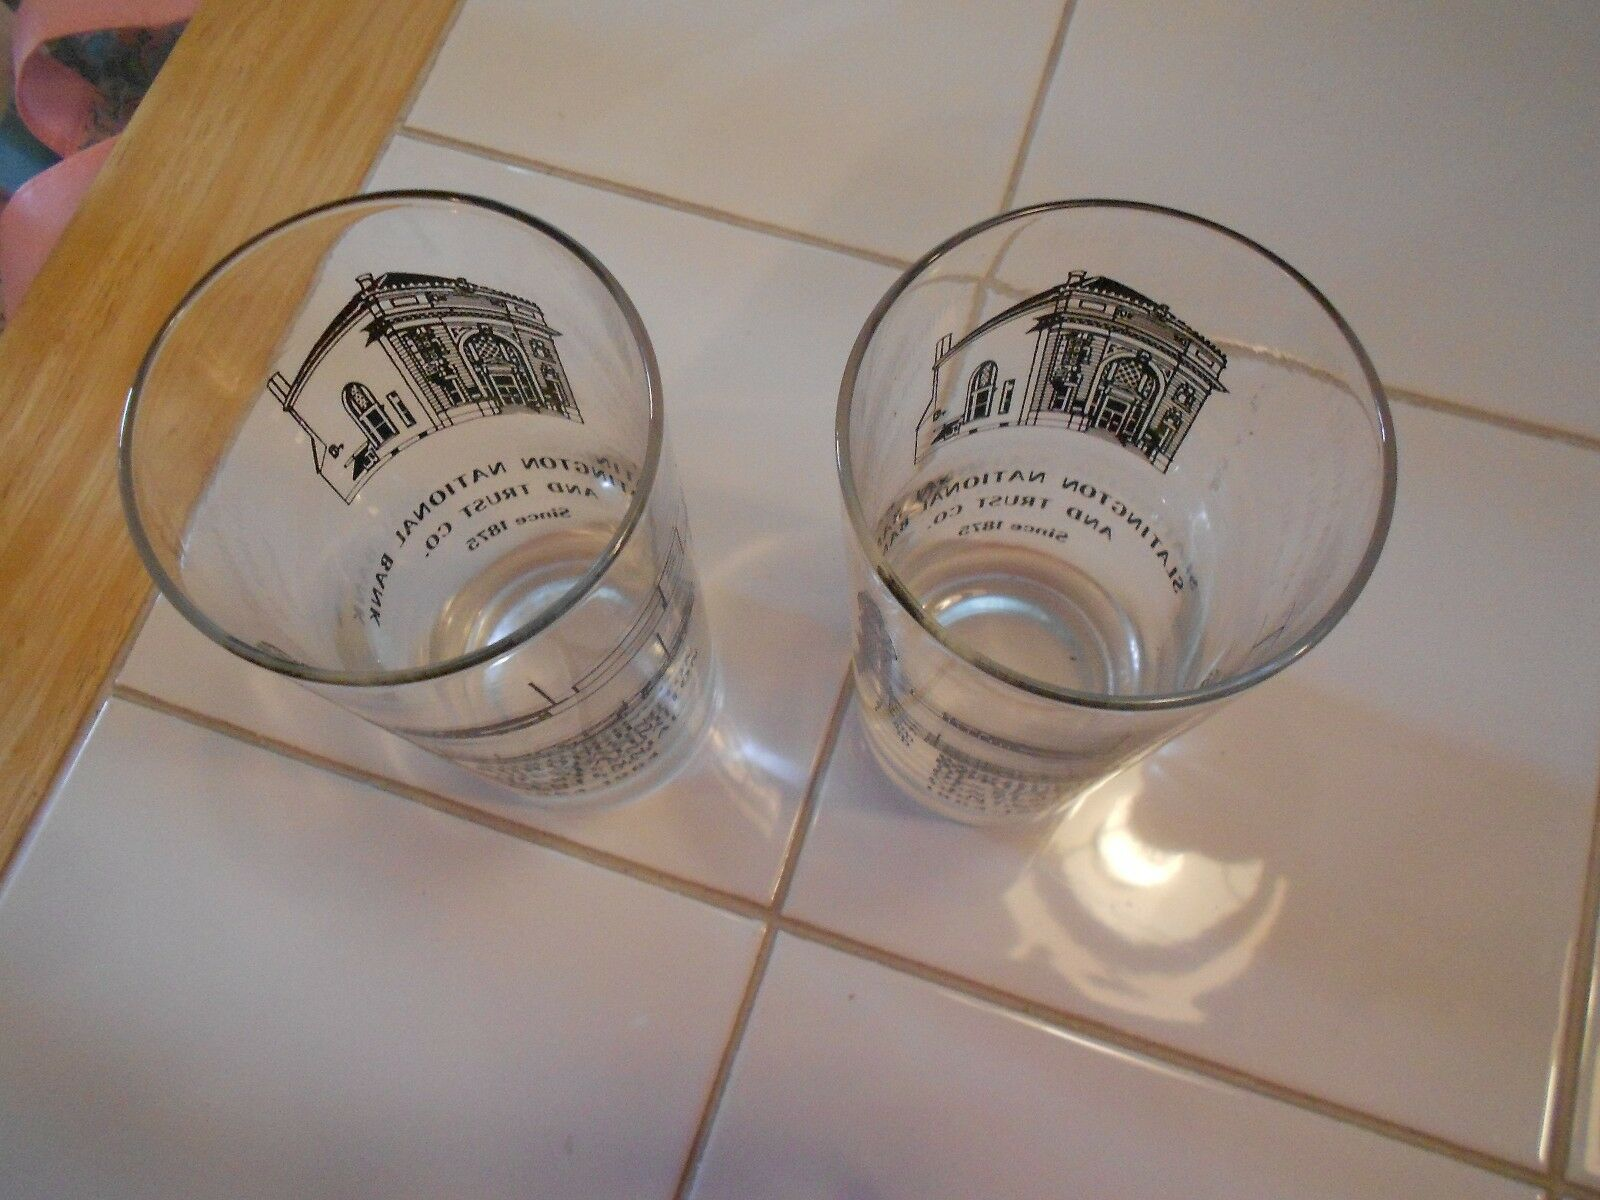 "VINTAGE (2) SLATINGTON NATIONAL BANK/TRUST GLASSES- 1864-1964  VG+ 4 1/2"" TALL"